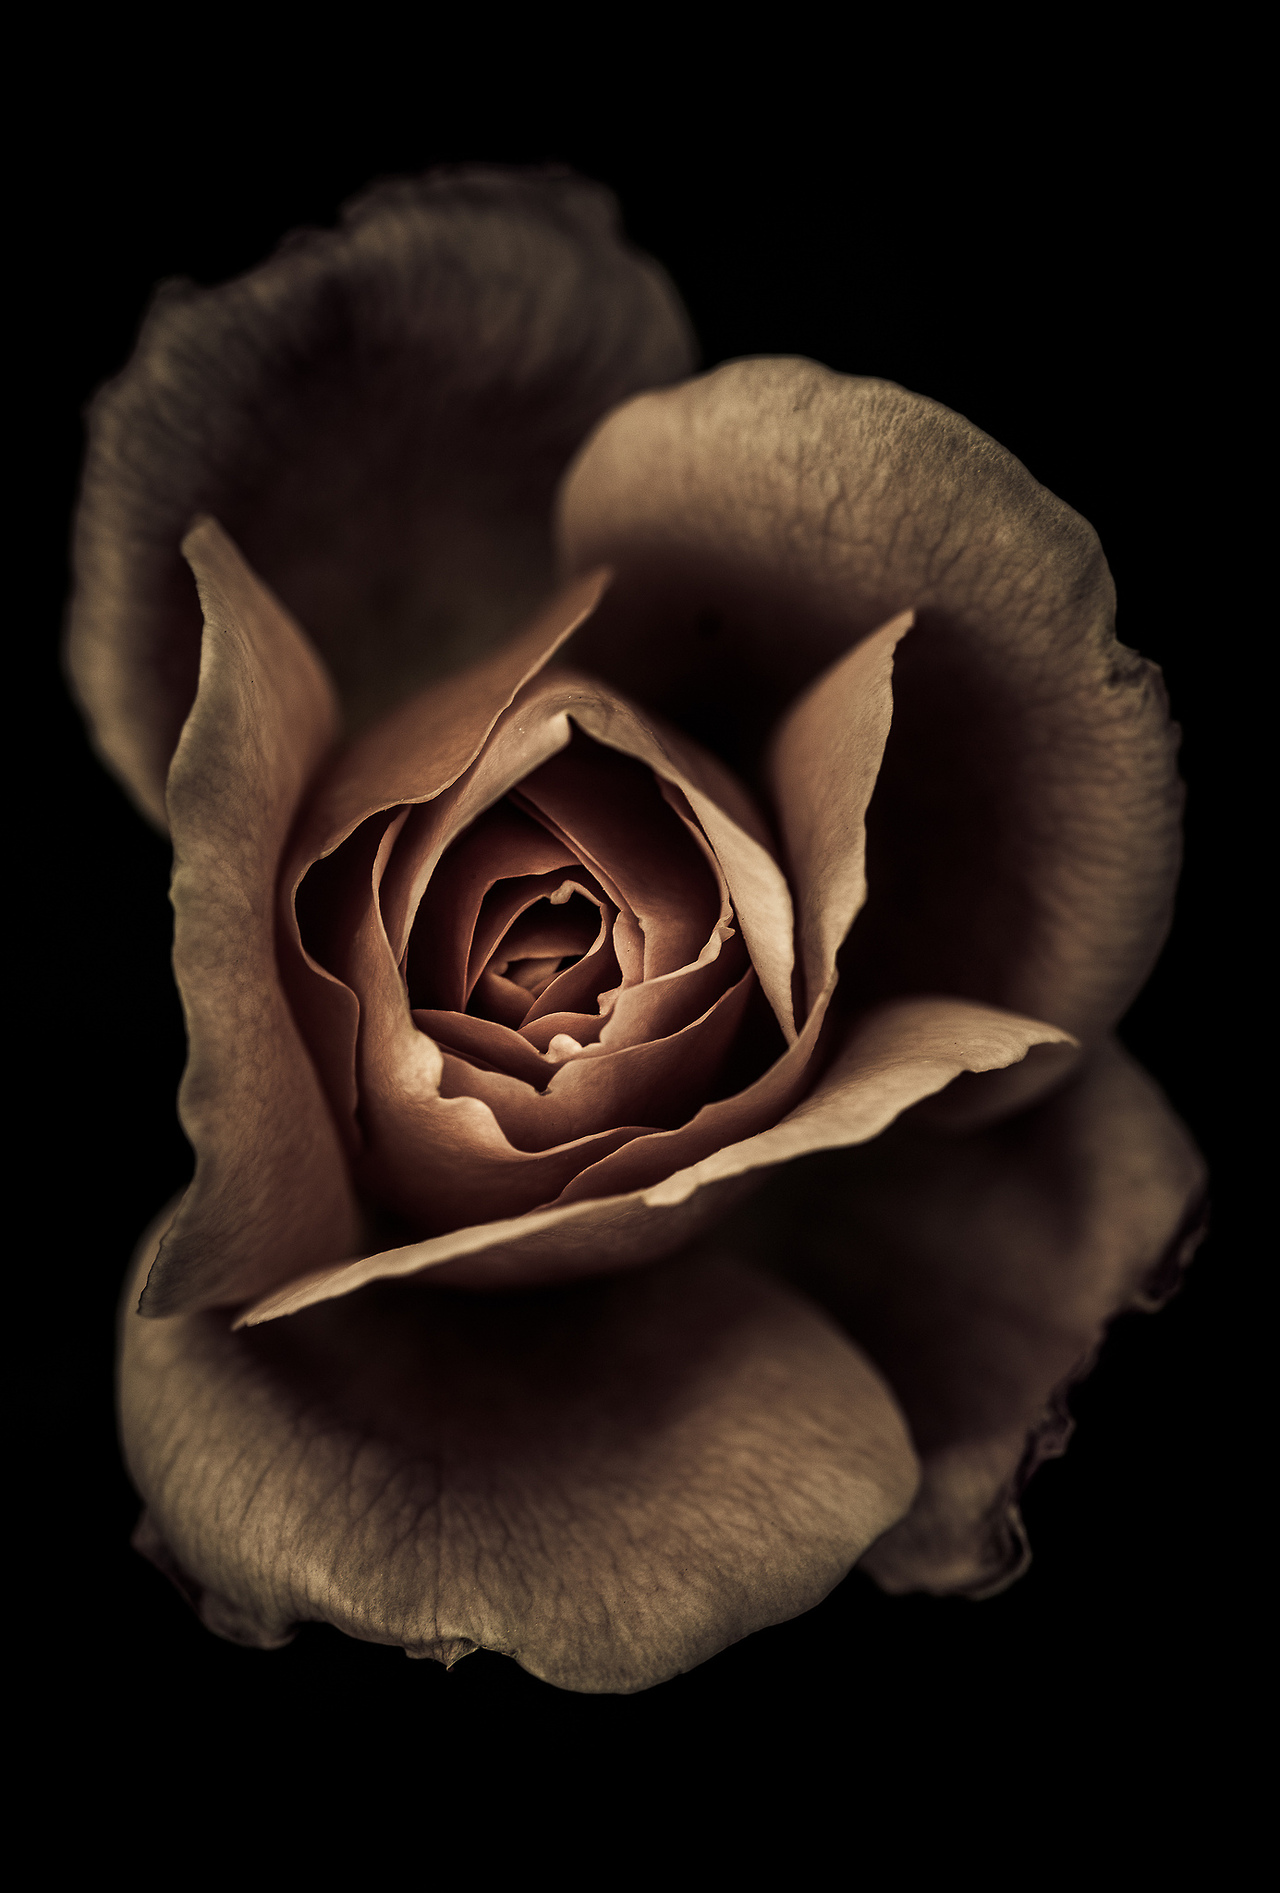 Chocolate-Rose-Black-background-wallpaper-wp4805249